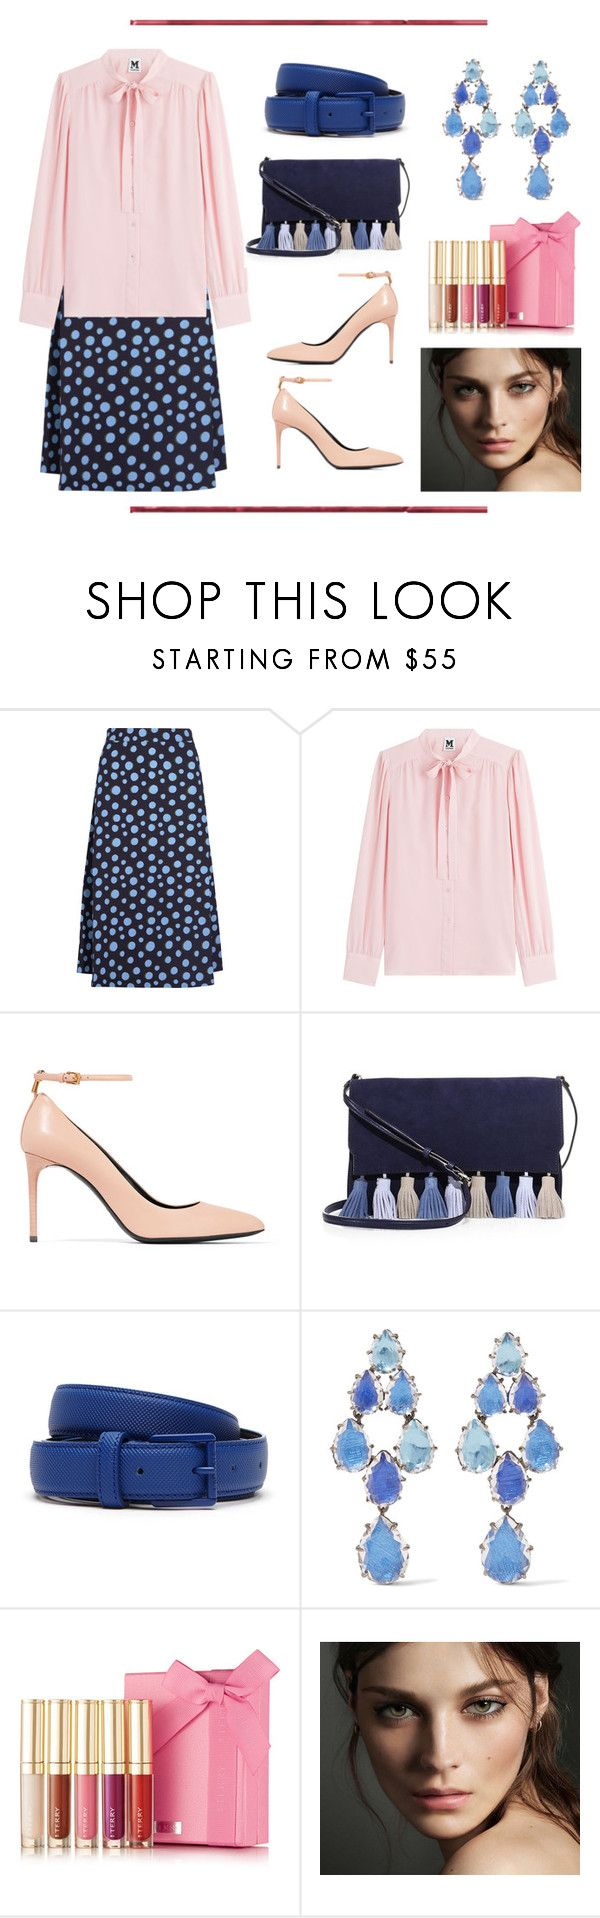 """""""Tie Neck Blouse & Midi Skirt"""" by dana-debanks ❤ liked on Polyvore featuring House of Holland, M Missoni, Tom Ford, Rebecca Minkoff, Lacoste, Larkspur & Hawk, By Terry and Burberry"""